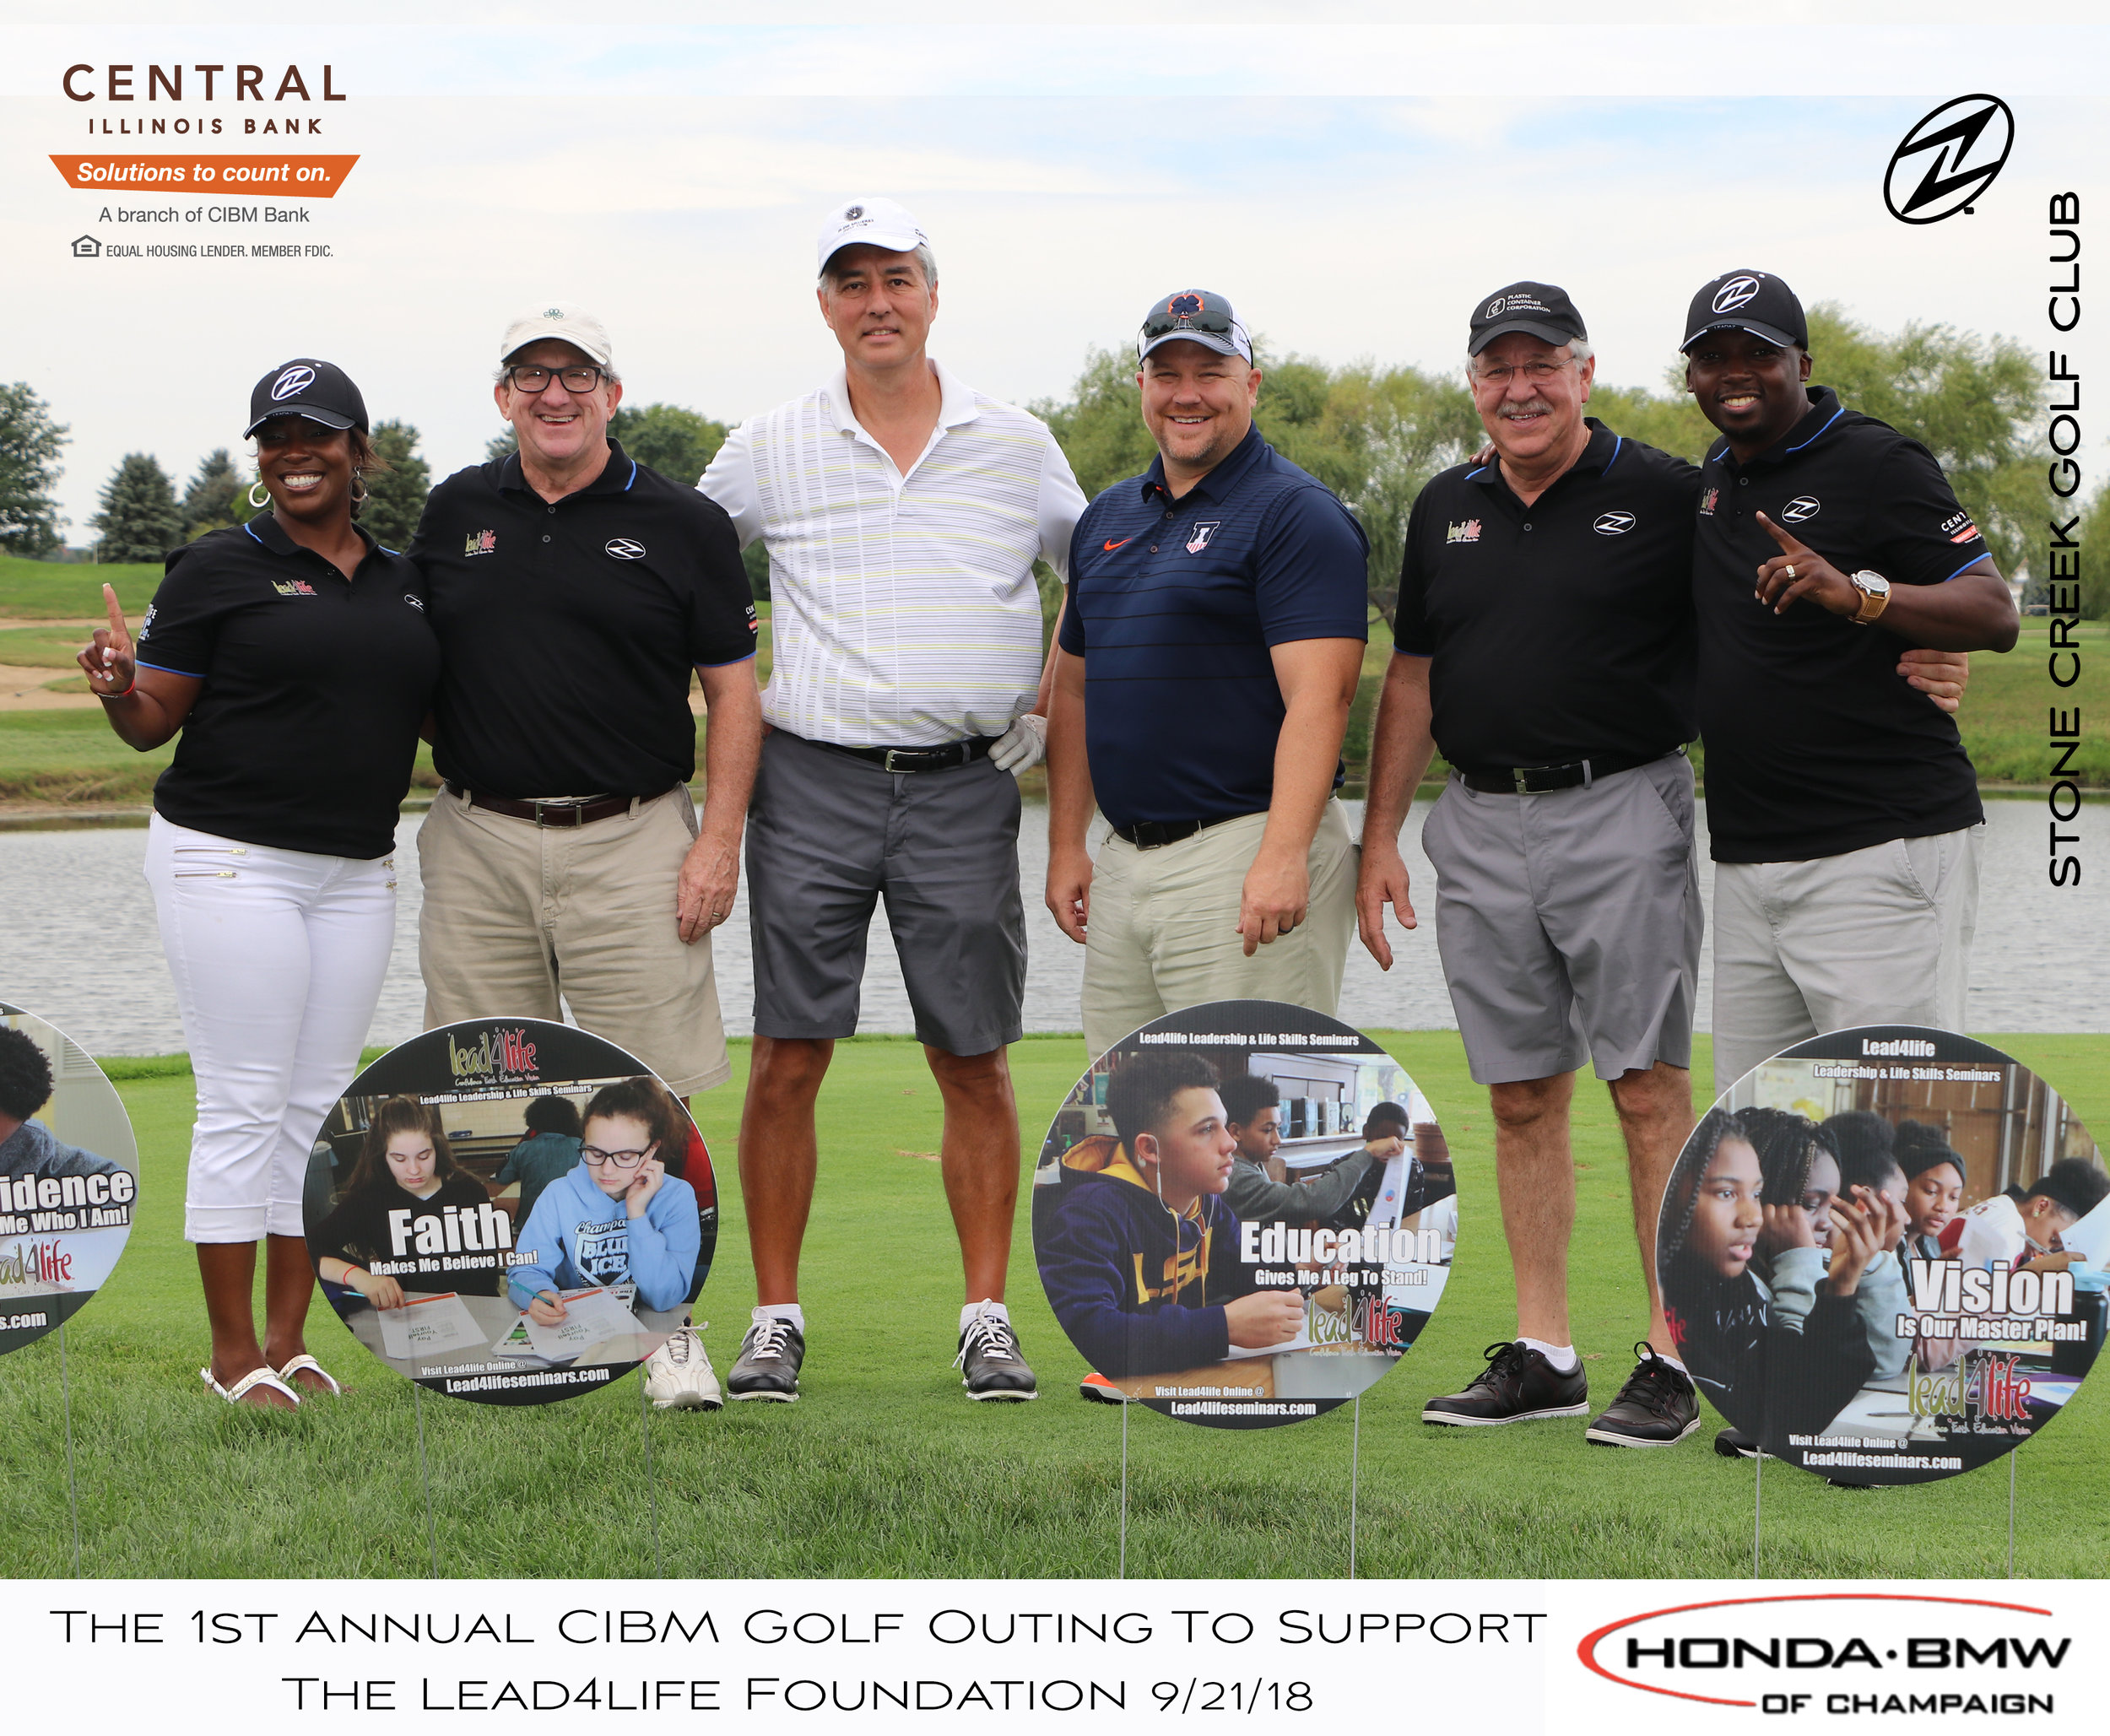 Lead4life Golf Group 8.jpg